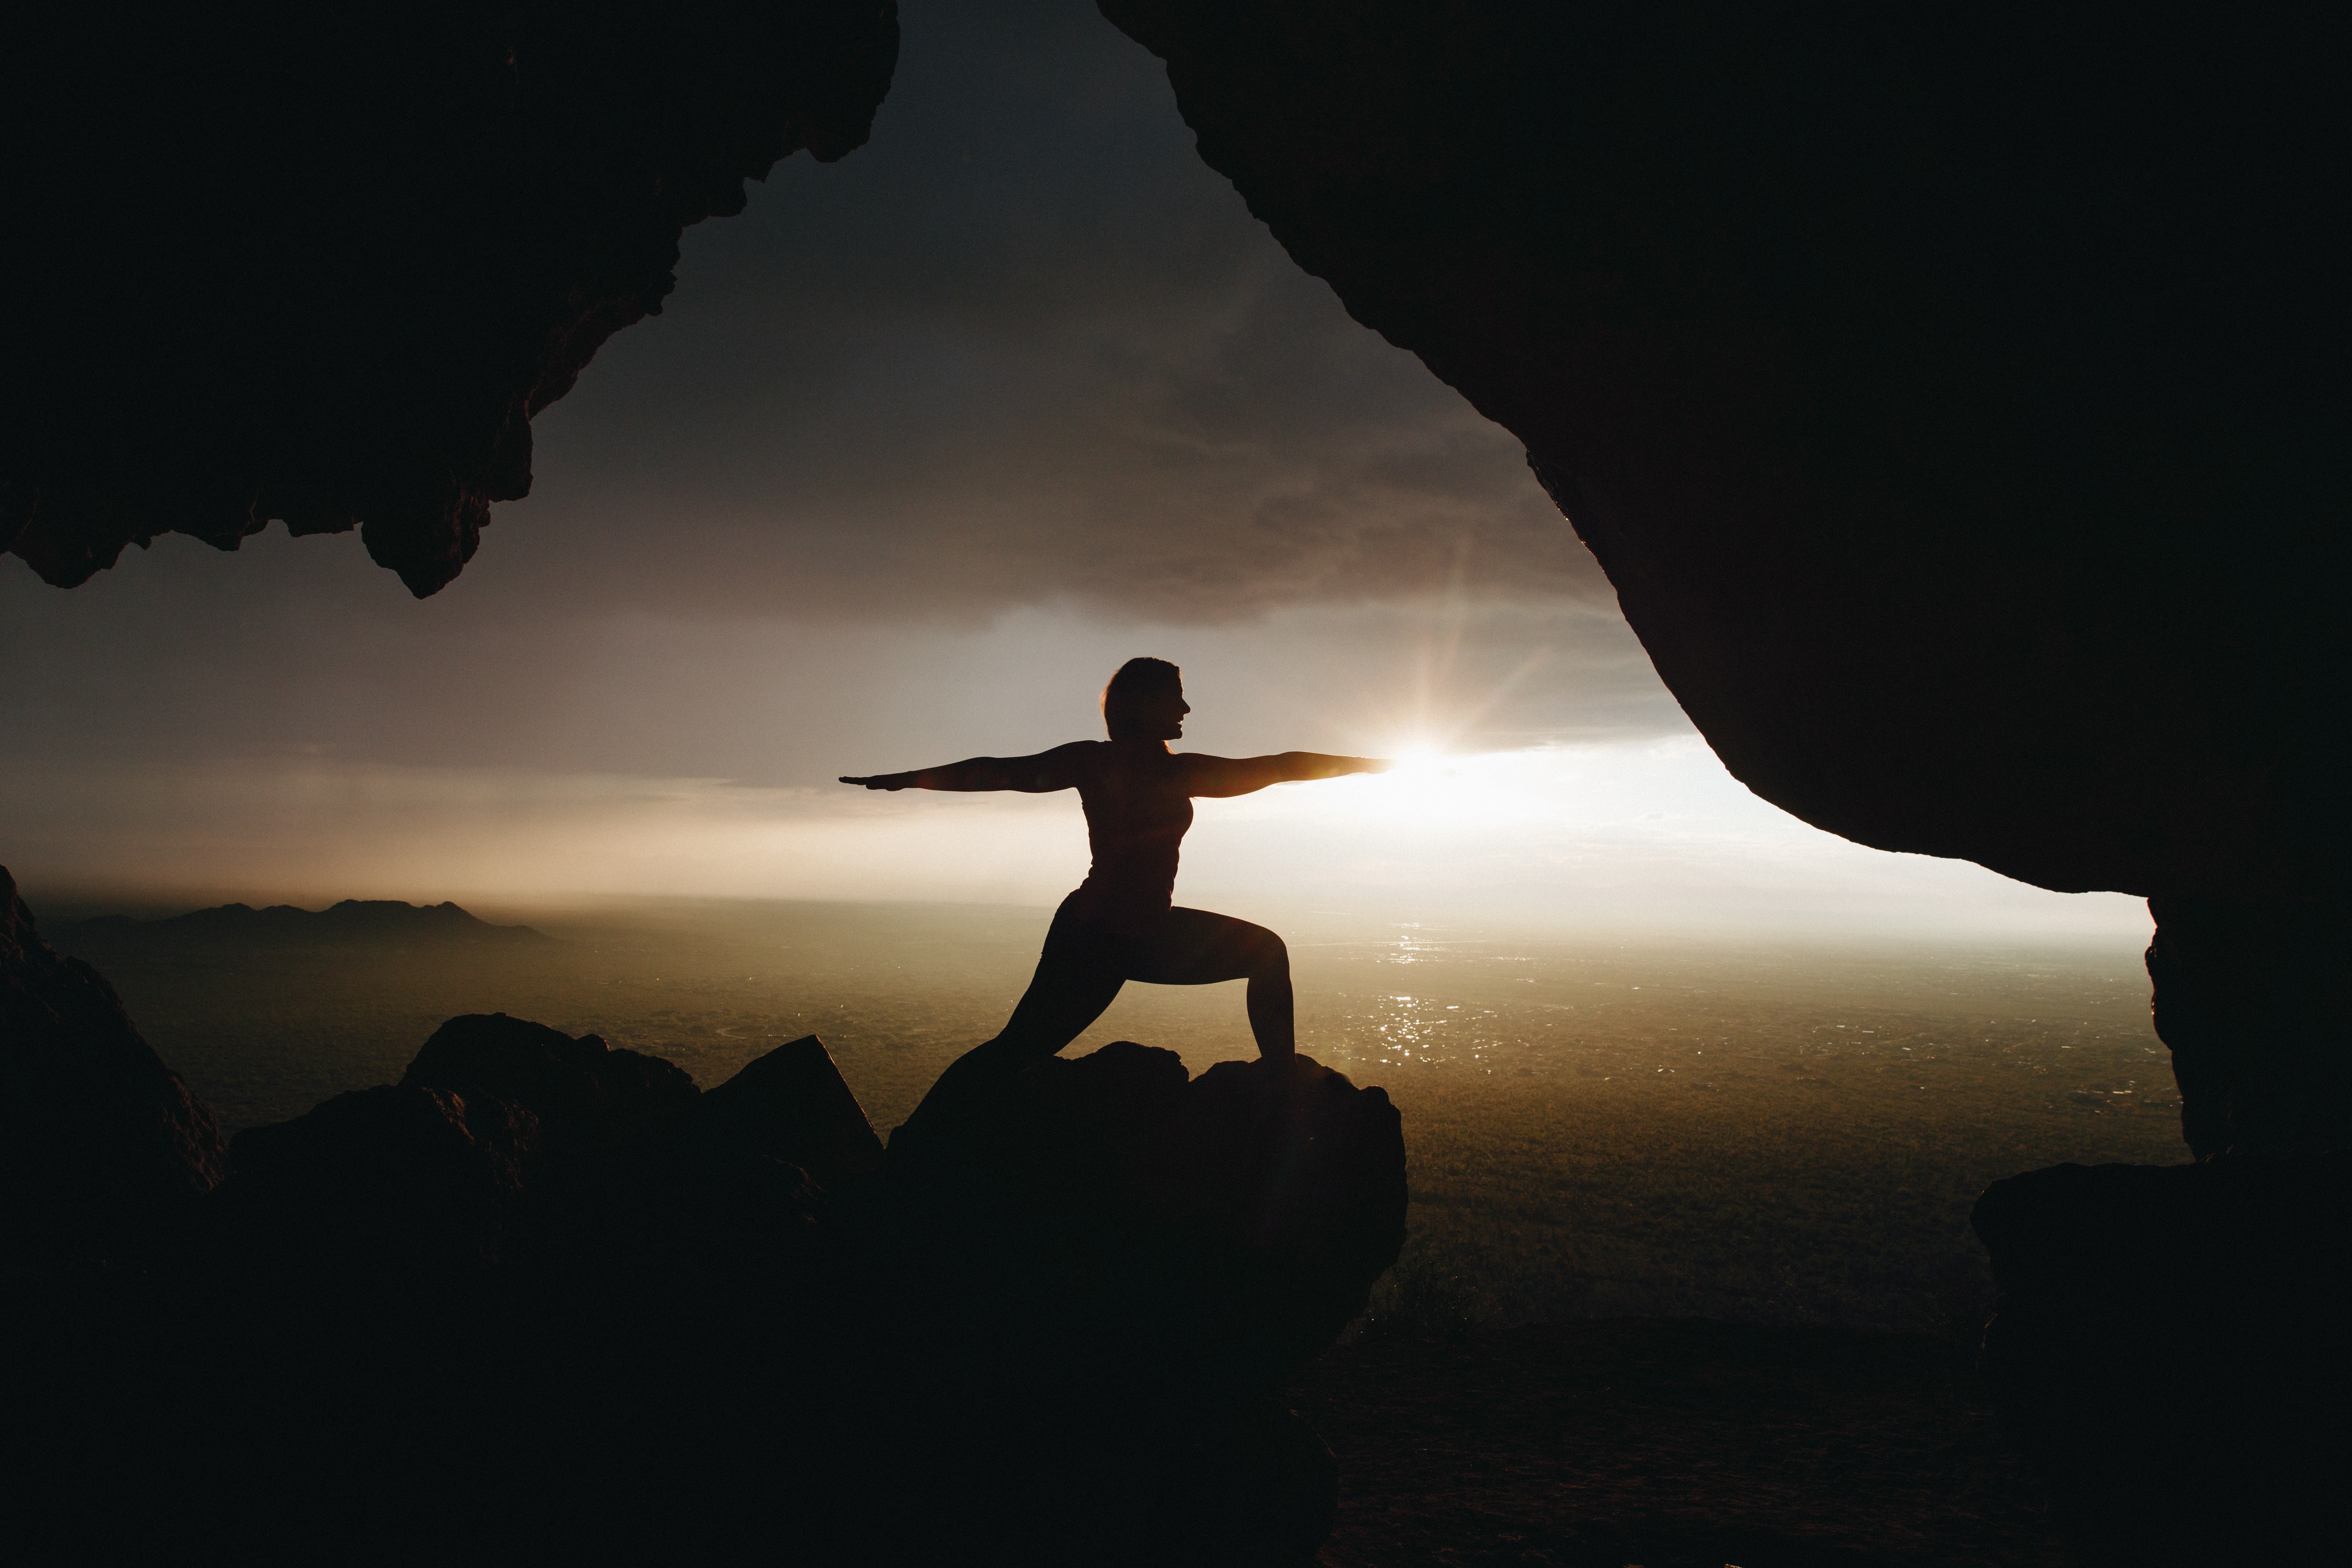 silhouette of person in yoga post on top of cliff during sunset